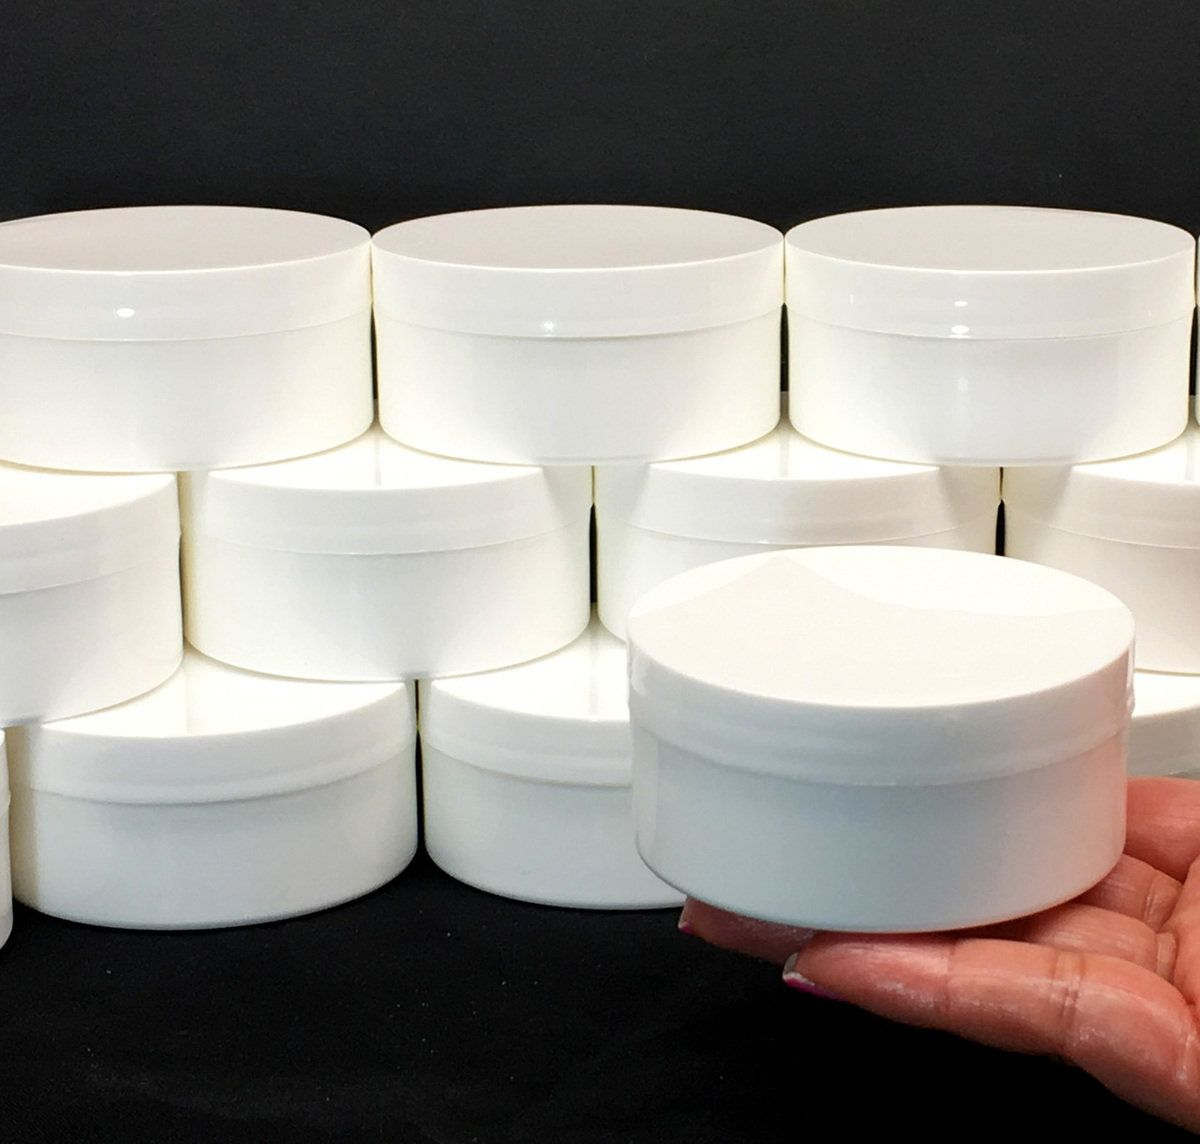 Plastic Jars Low Profile Wide Mouth Thick Wall White Containers 2 Oz White Black Cap 9332 9335 Diy Body Butter Cosmetic Containers Cosmetic Jars